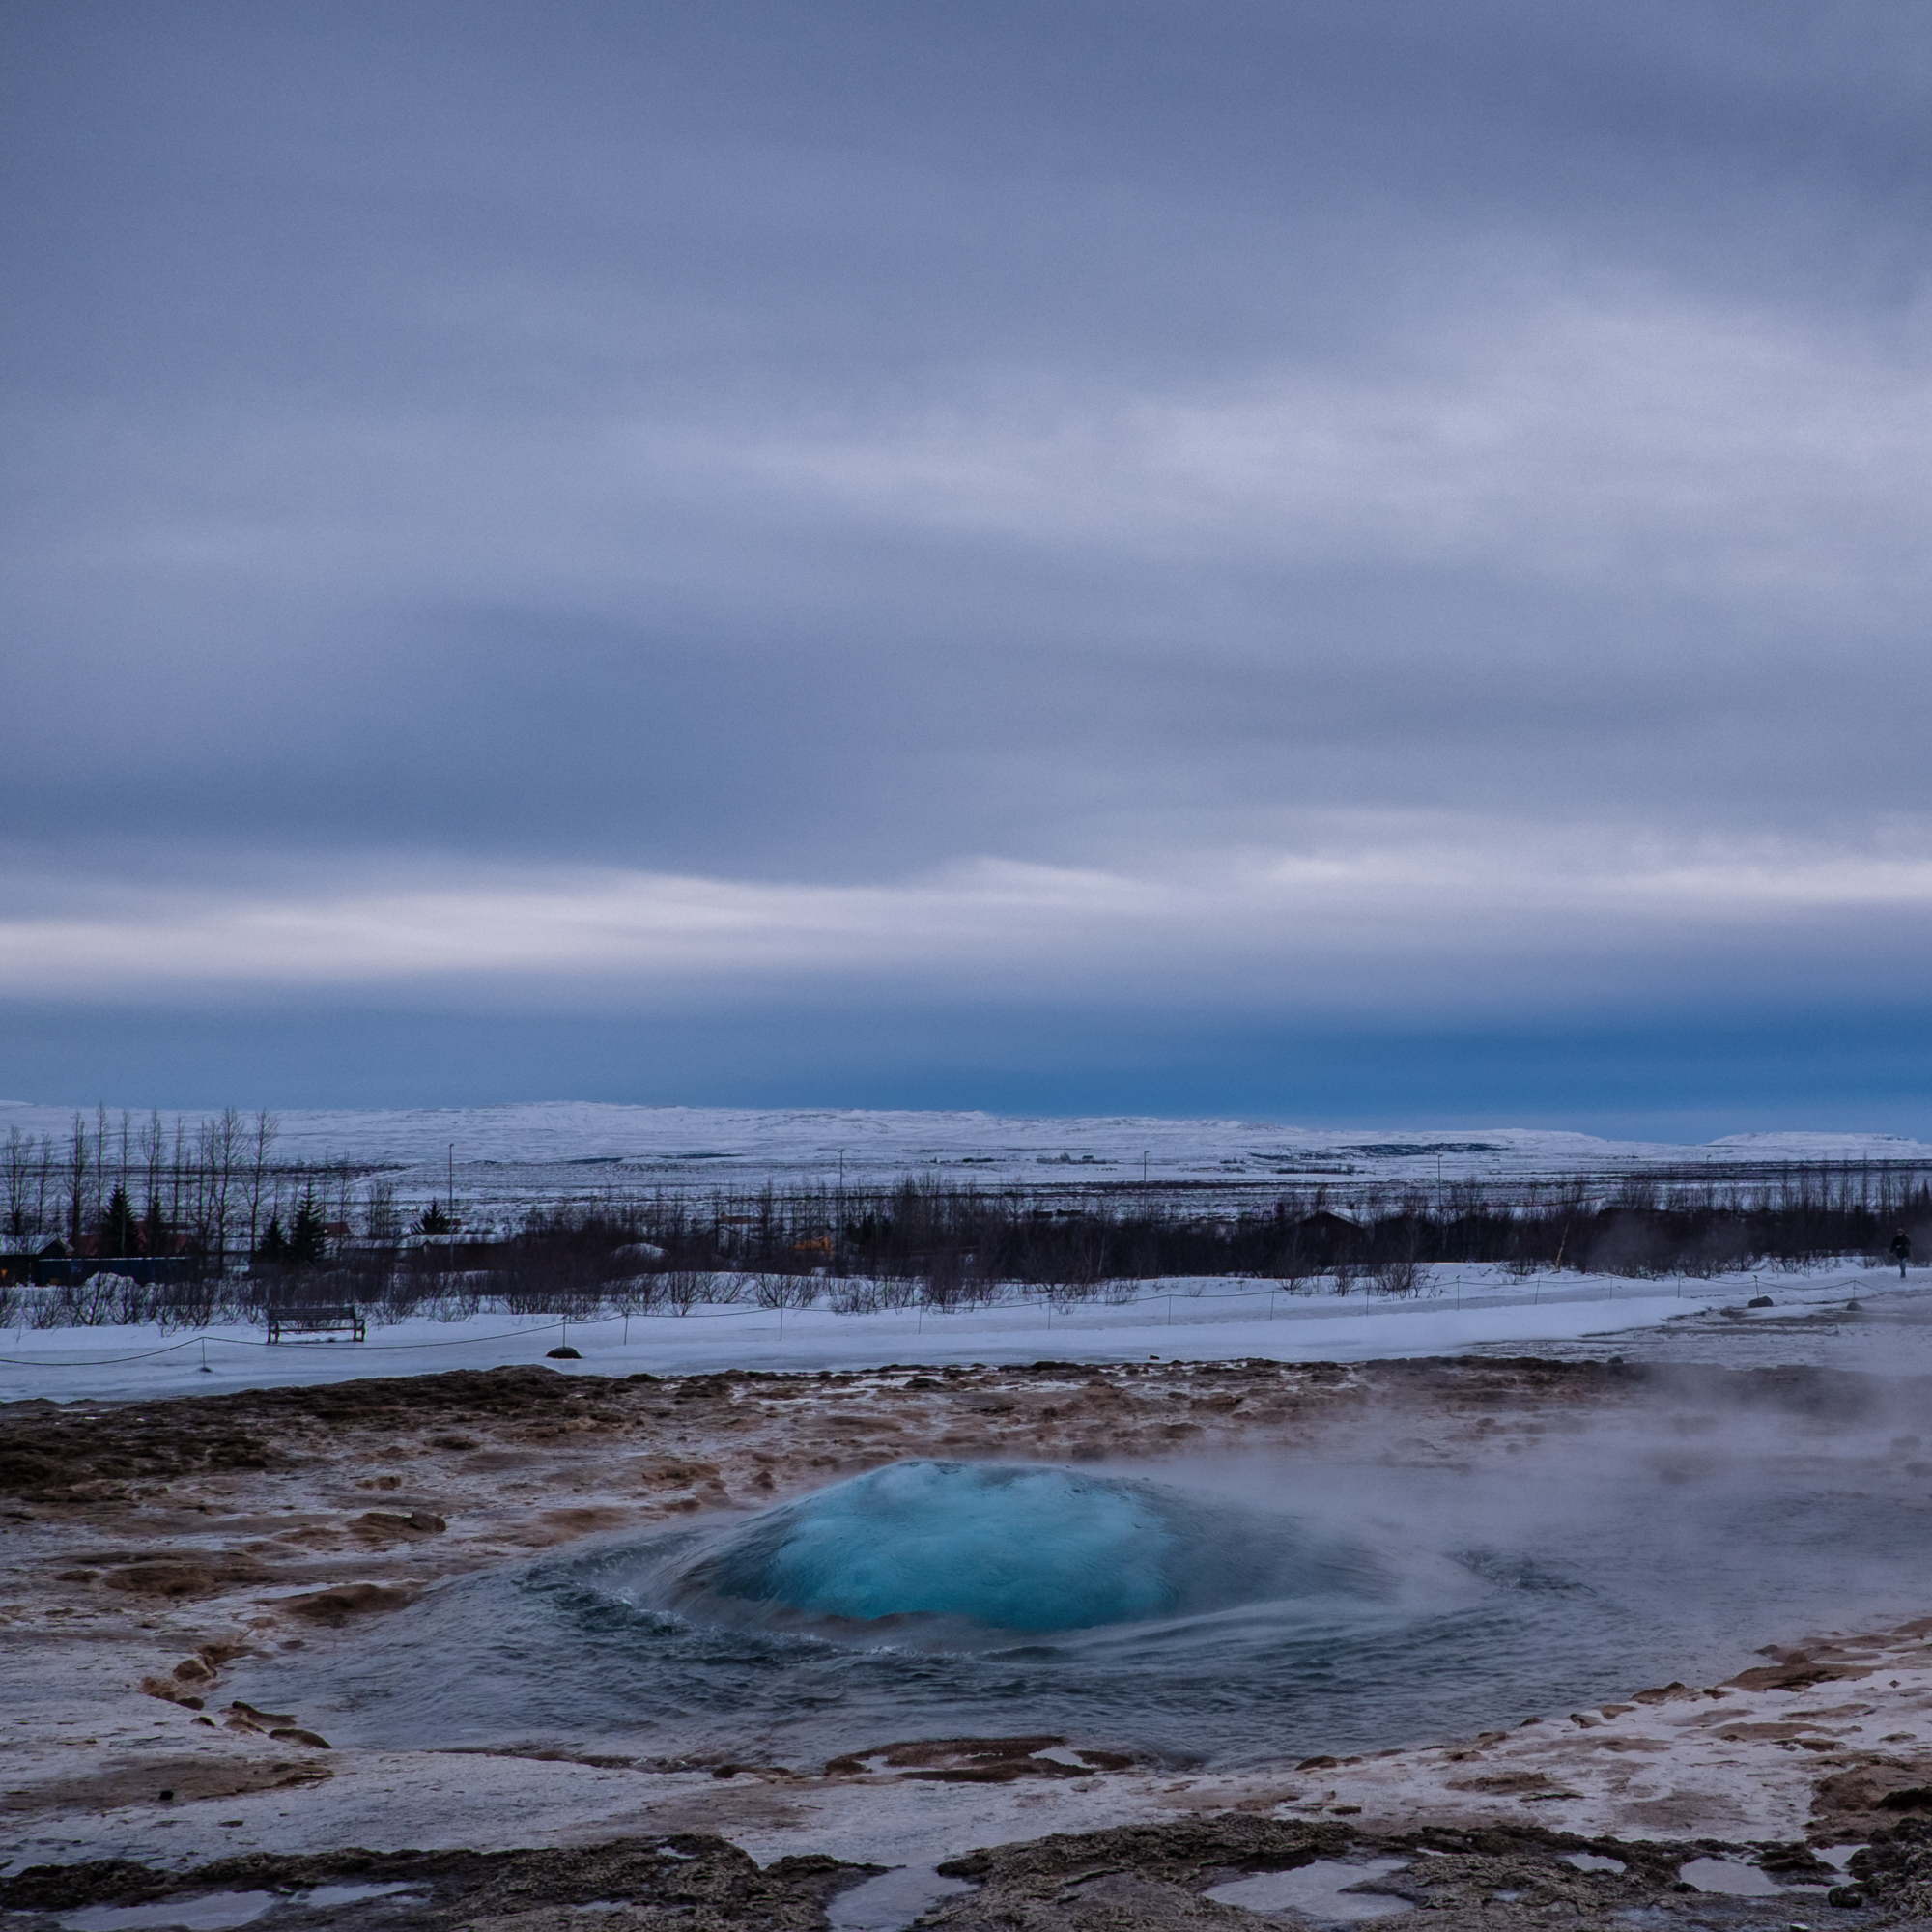 Geysir Iceland Northern Ireland Landscape Photographer-31